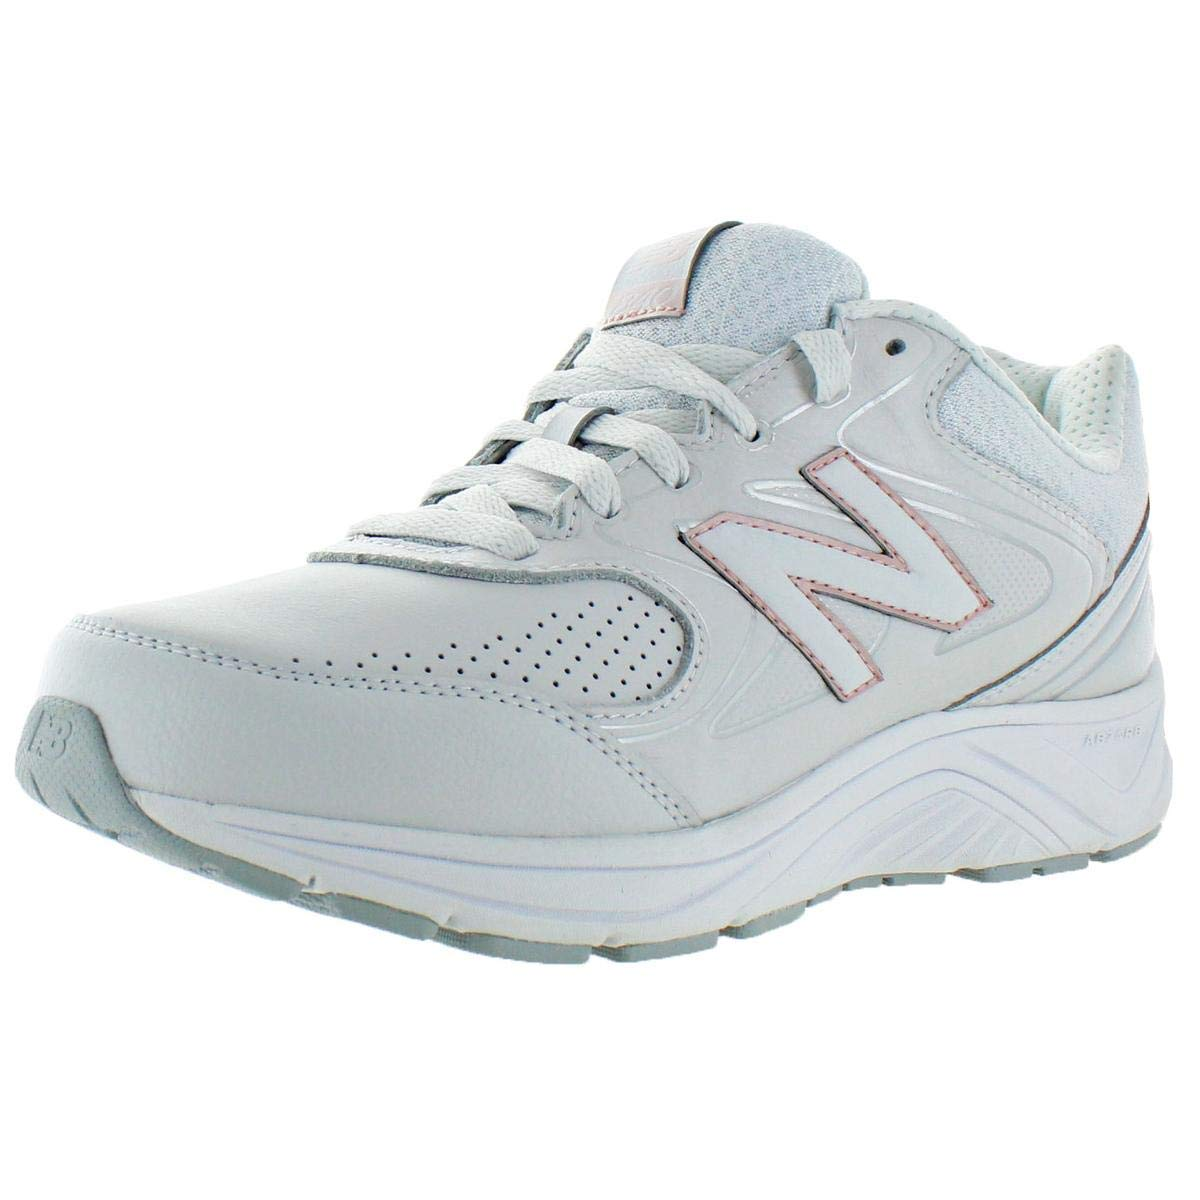 gris Rose or New Balance 840, Chaussures Multisport Indoor Femme 43 EU 2E